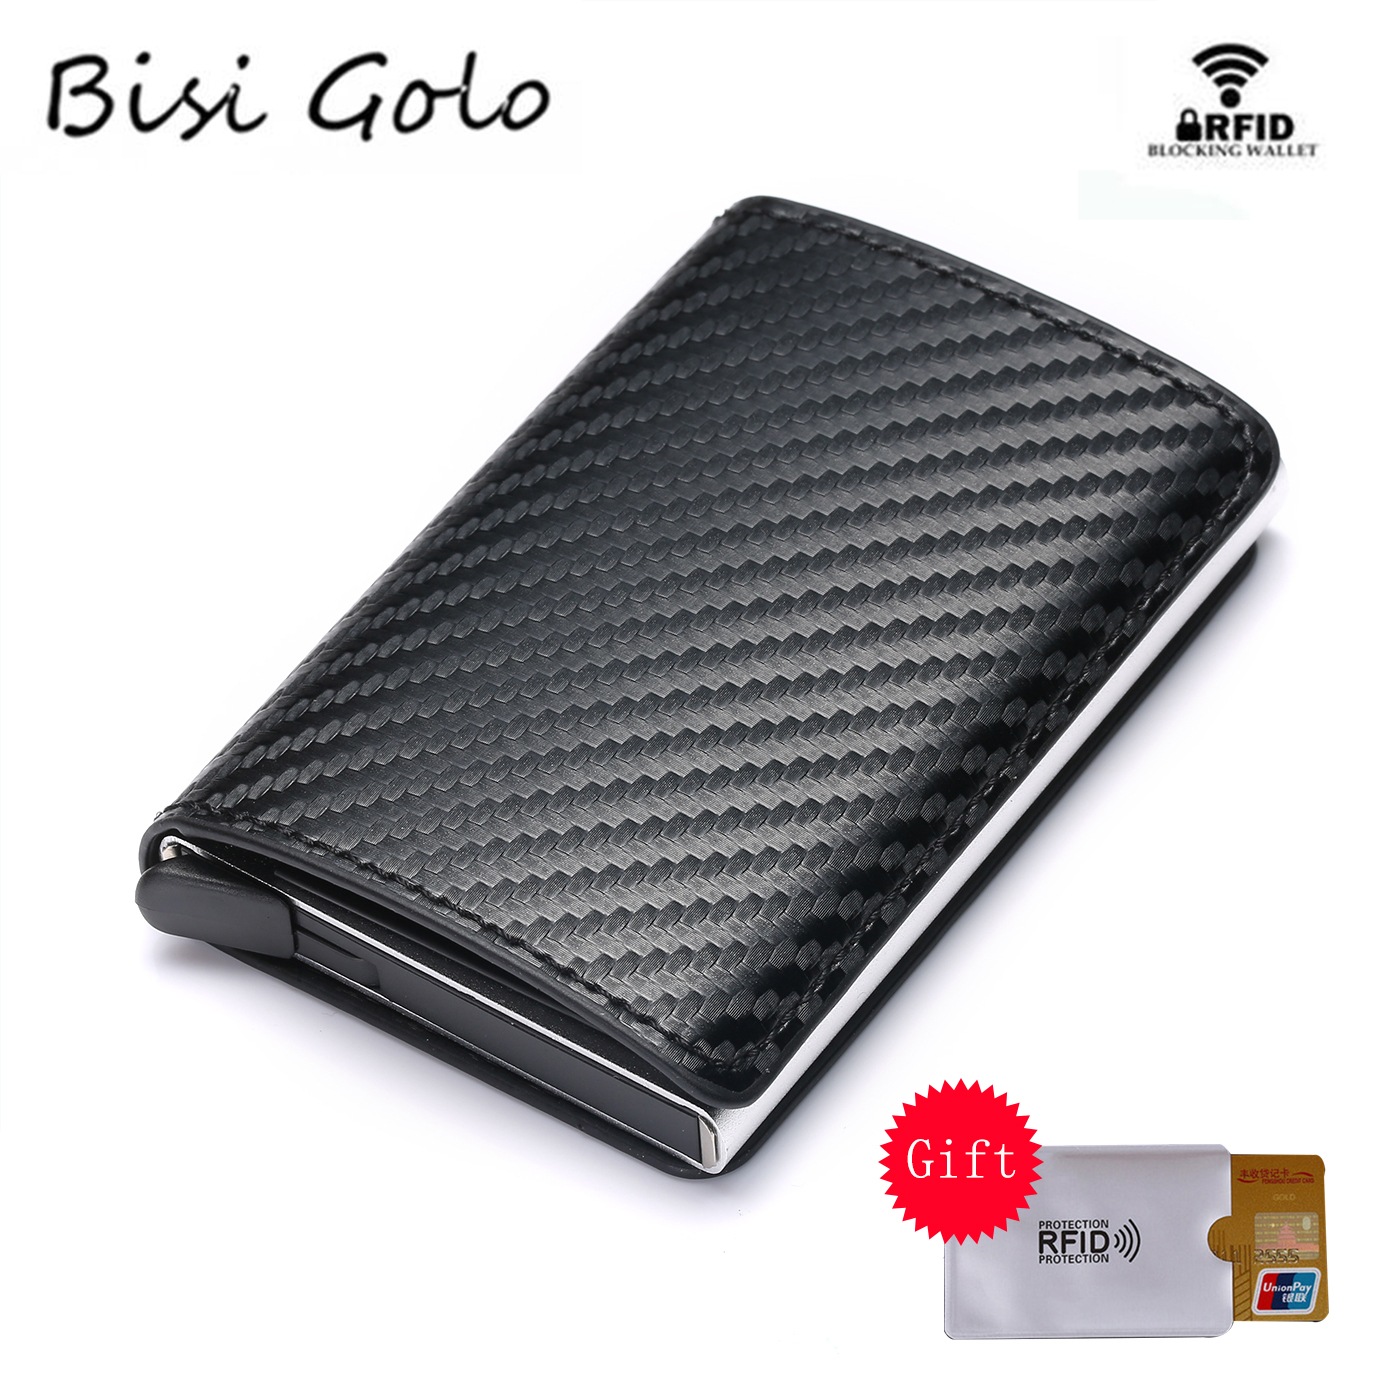 BISI GORO Aluminum Box Credit Card Wallets RFID Blocking High Quality Slim Card Holders Solid Colorful Mini Wallet Wholesale